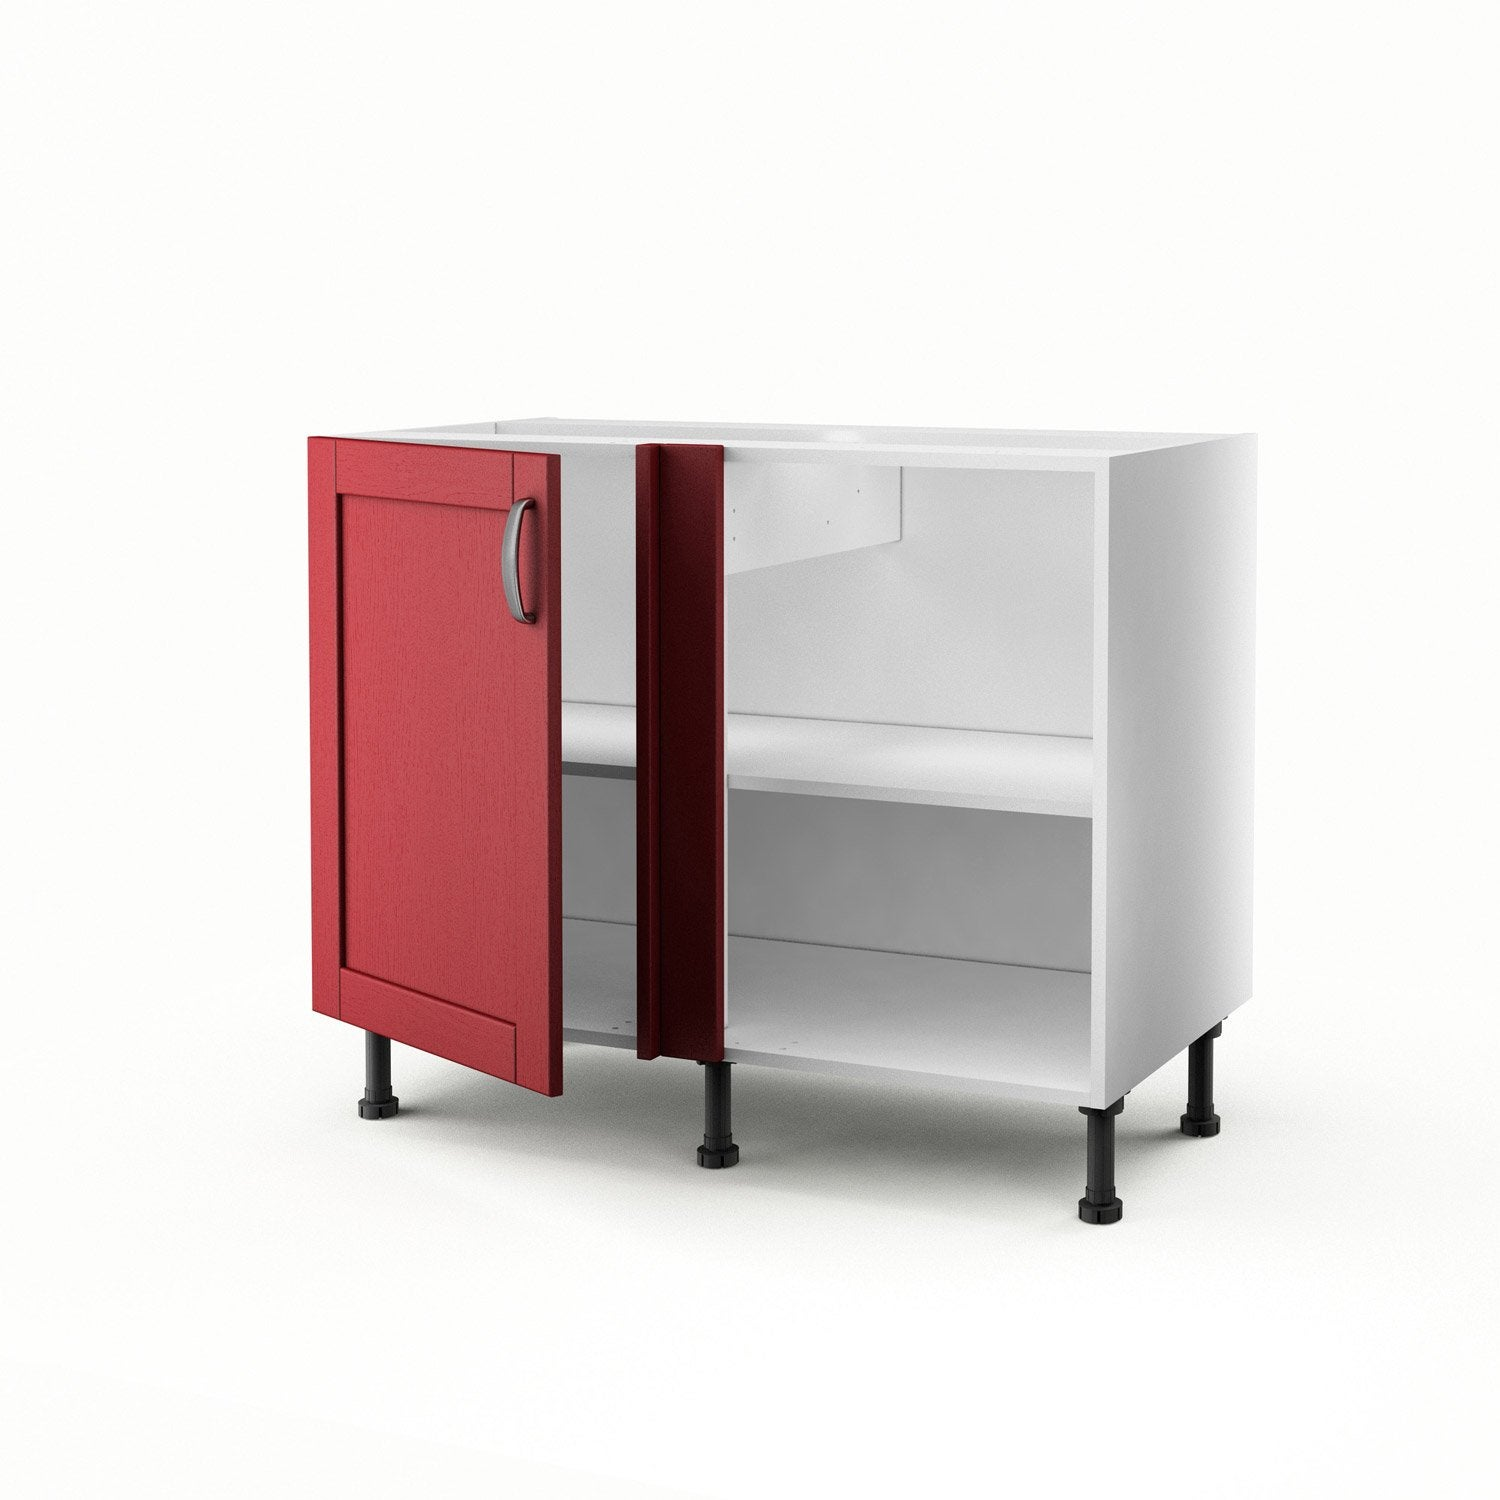 meuble de cuisine bas d 39 angle rouge 1 porte rubis x x cm leroy merlin. Black Bedroom Furniture Sets. Home Design Ideas